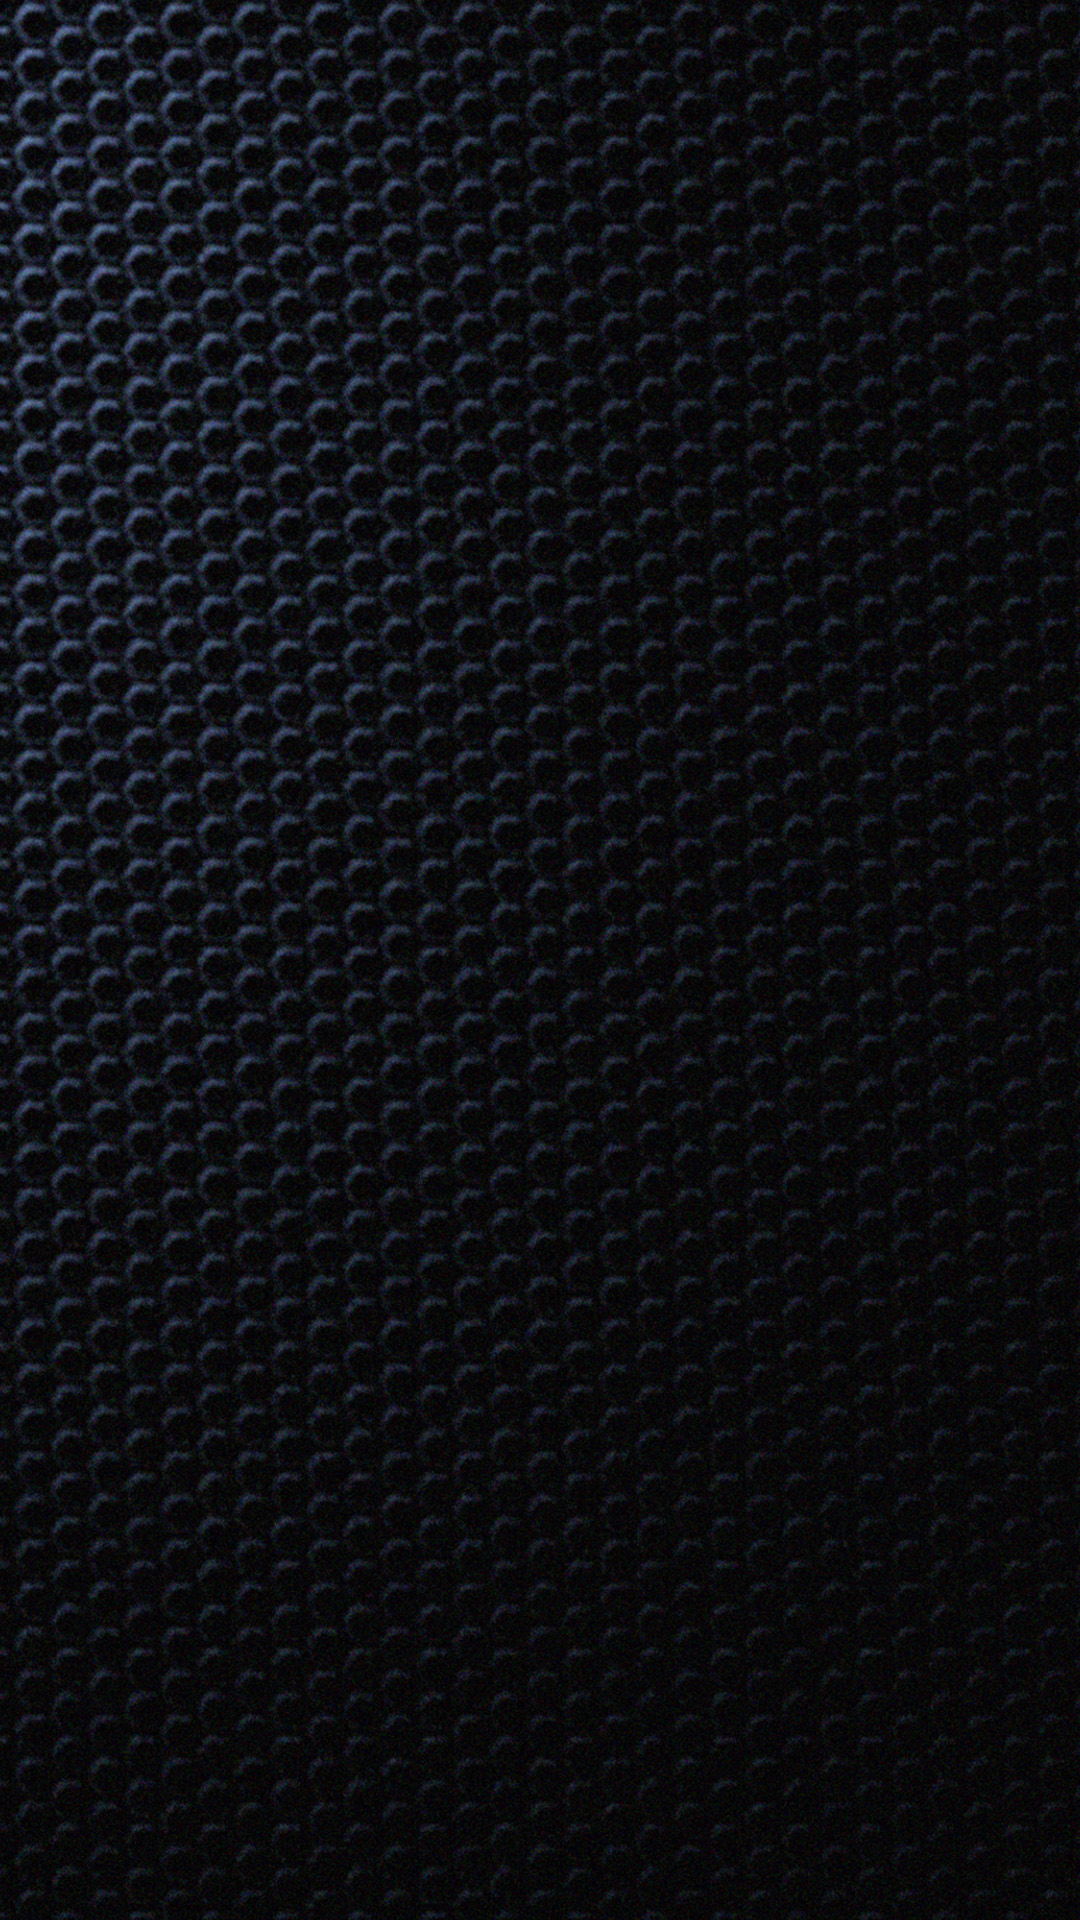 Black Texture 06 Galaxy S5 Wallpapers Samsung Galaxy S5 Wallpapers HD 1080x1920